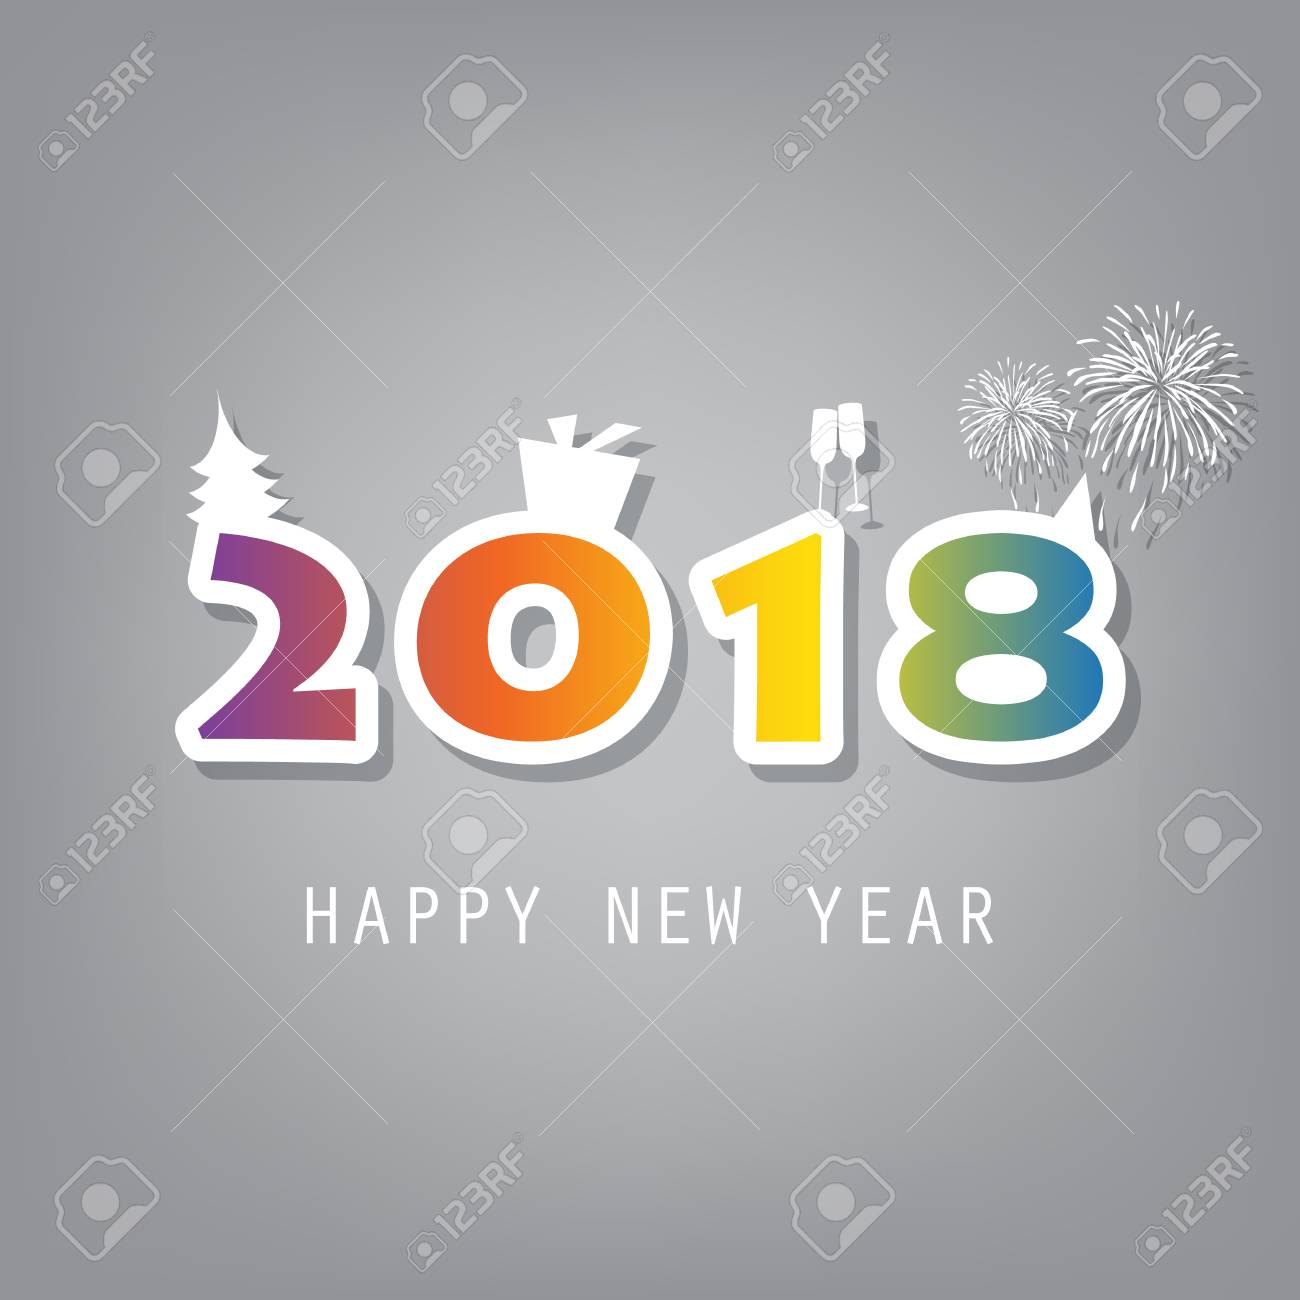 best wishes simple colorful new year card cover or background design template with christmas